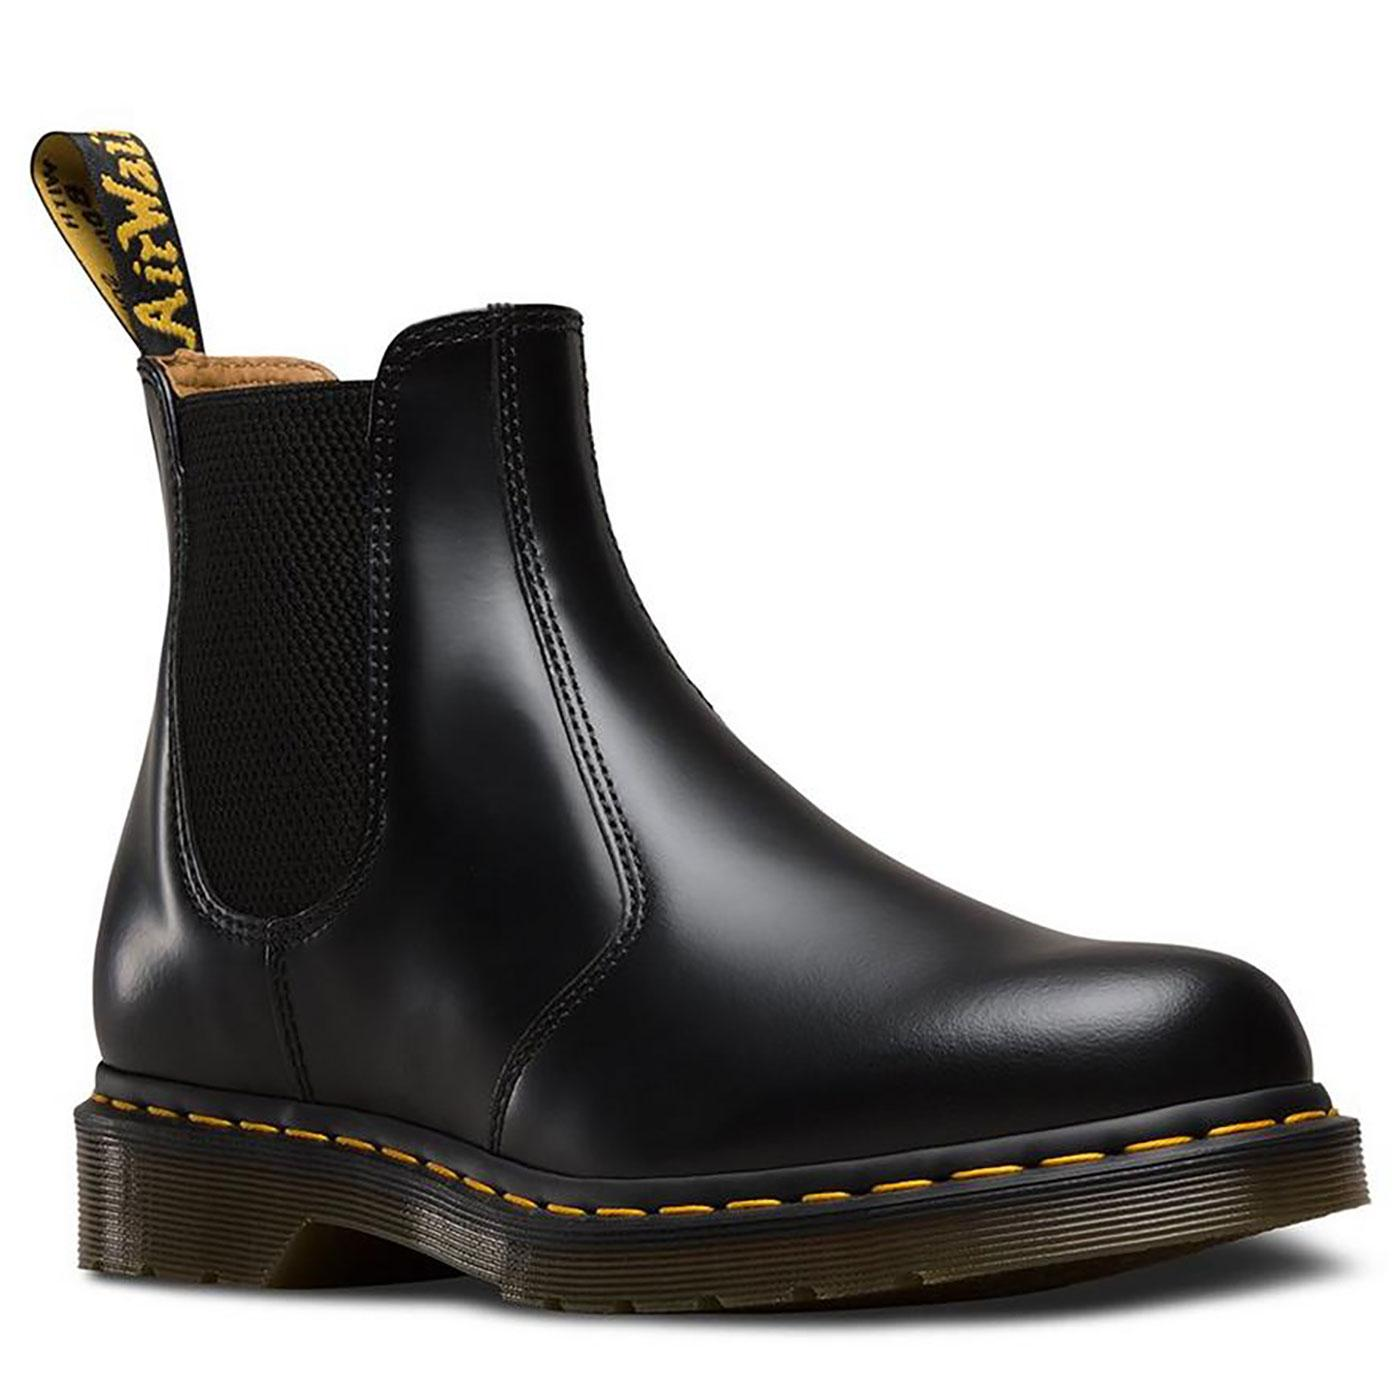 2976 Smooth DR MARTENS Retro Mod Chelsea Boots